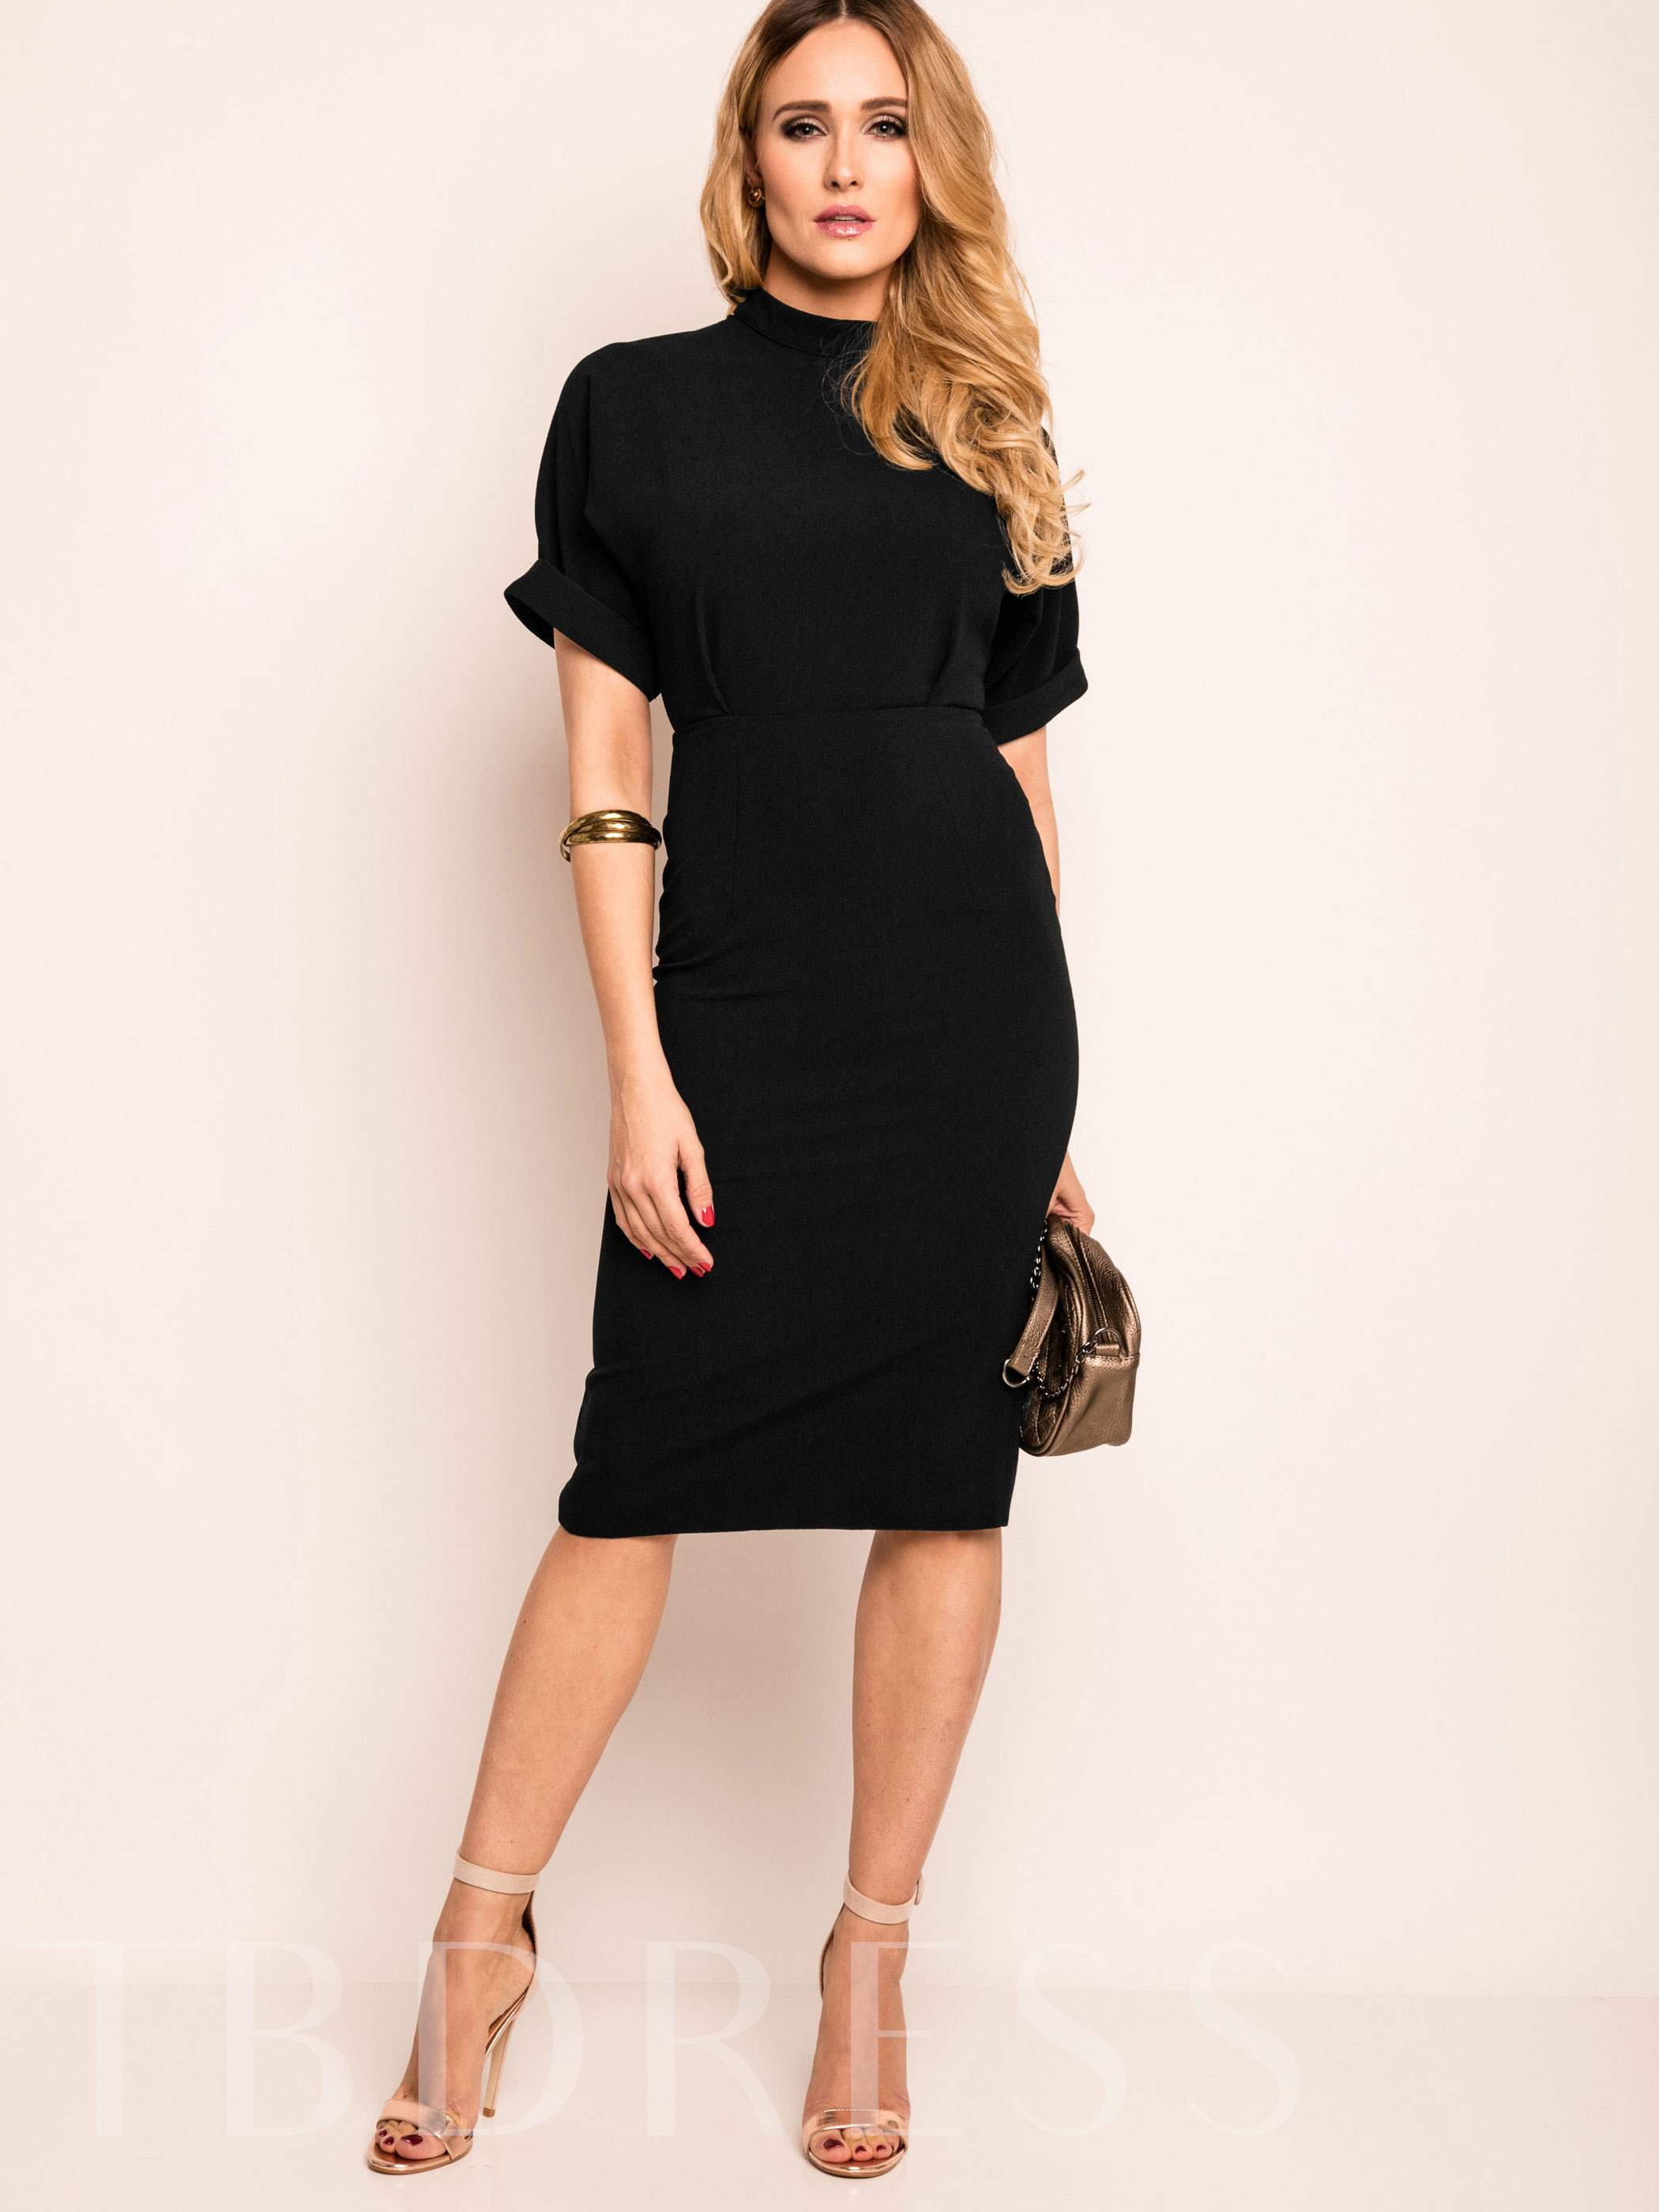 Plain Backless Short Sleeve Women's Bodycon Dress, Summer,Fall, 12748119